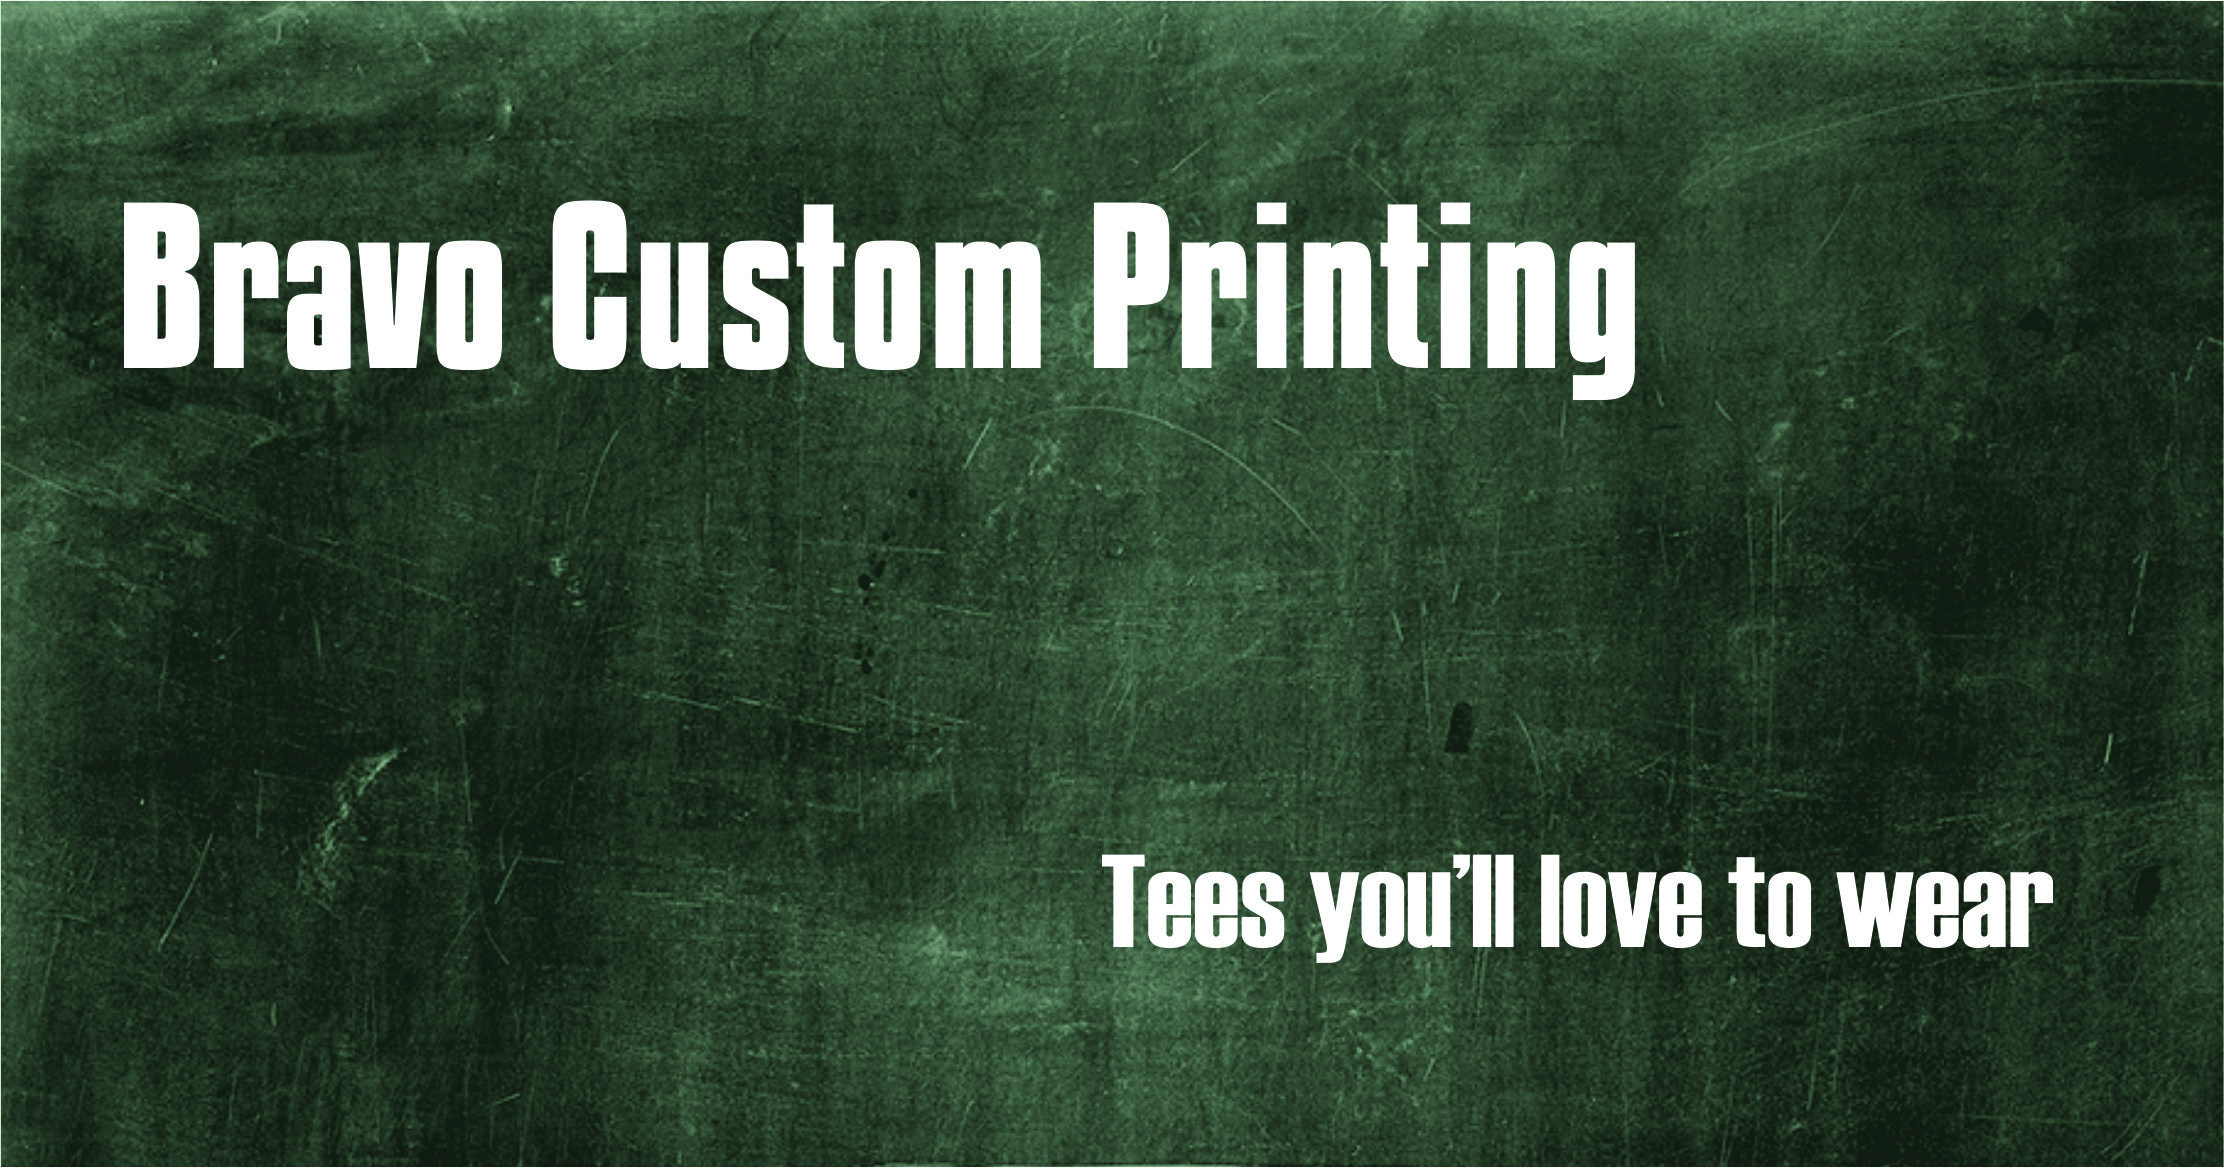 The Bravo Custom Printing shop is our shop for fun & pop culture inspired tees and tops printed on high quality cotton blends